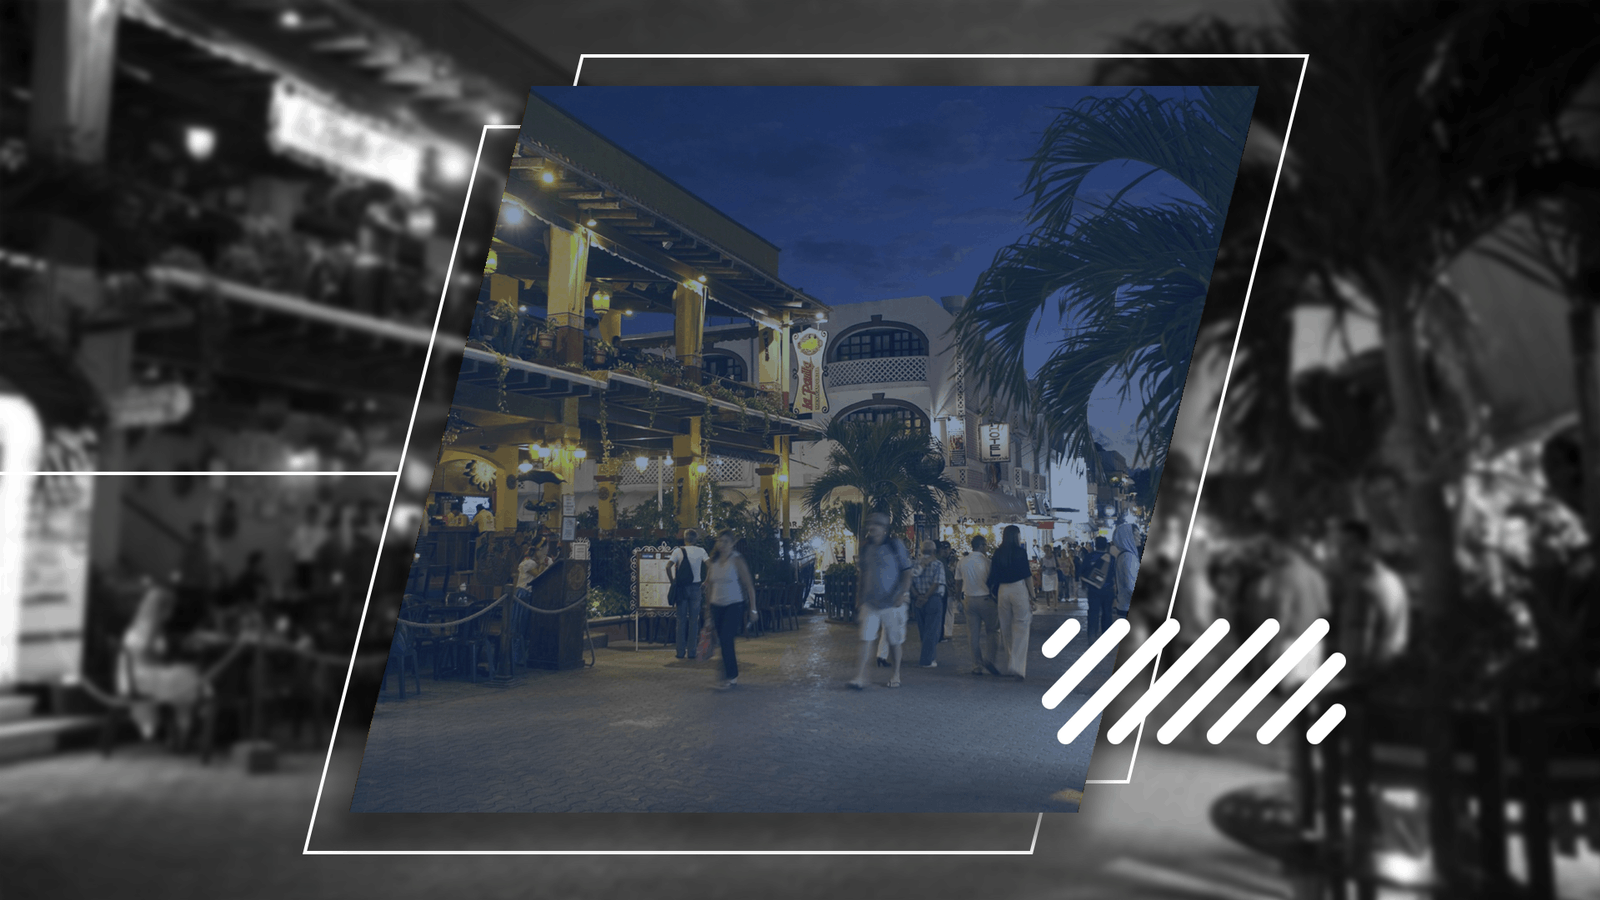 What is the 5th Avenue in Playa del Carmen famous for?